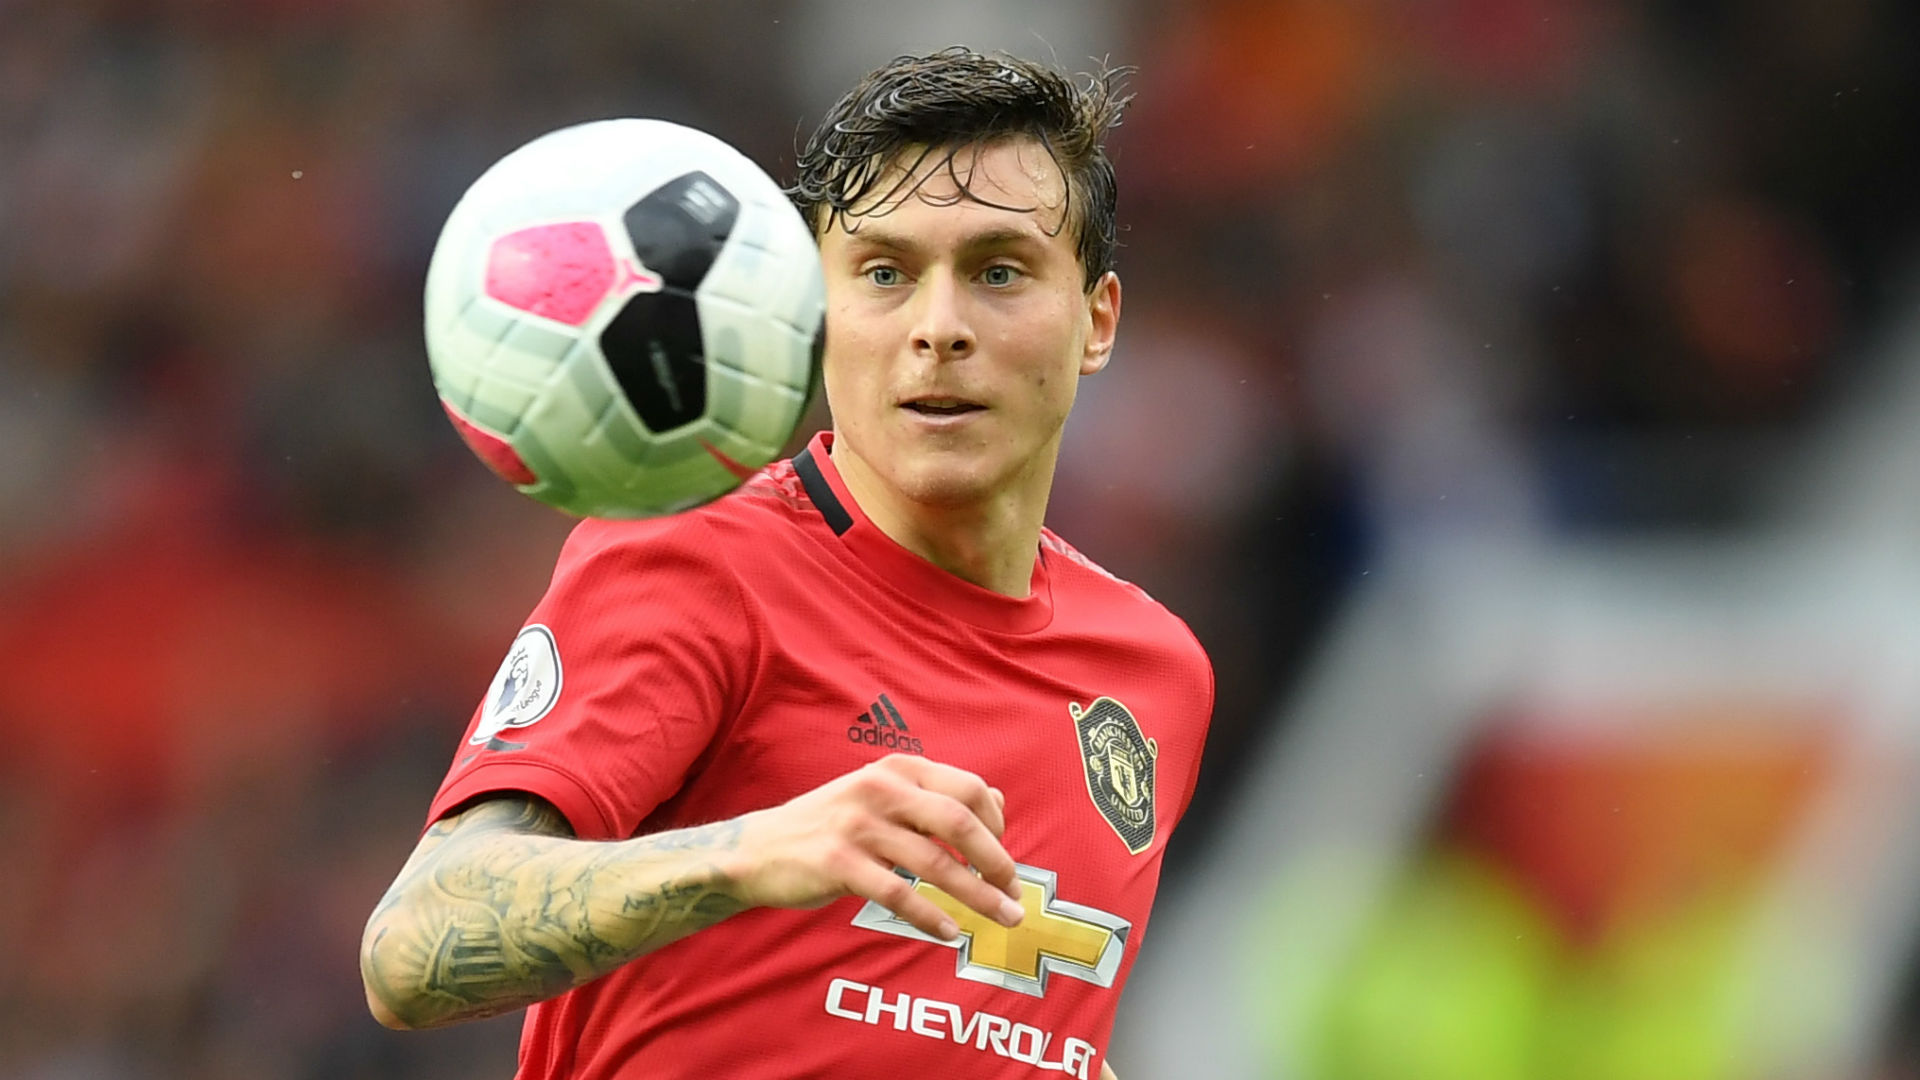 'Lindelof wanted to join a Championship club' – Swede almost missed out on Man Utd, says ex-Benfica boss